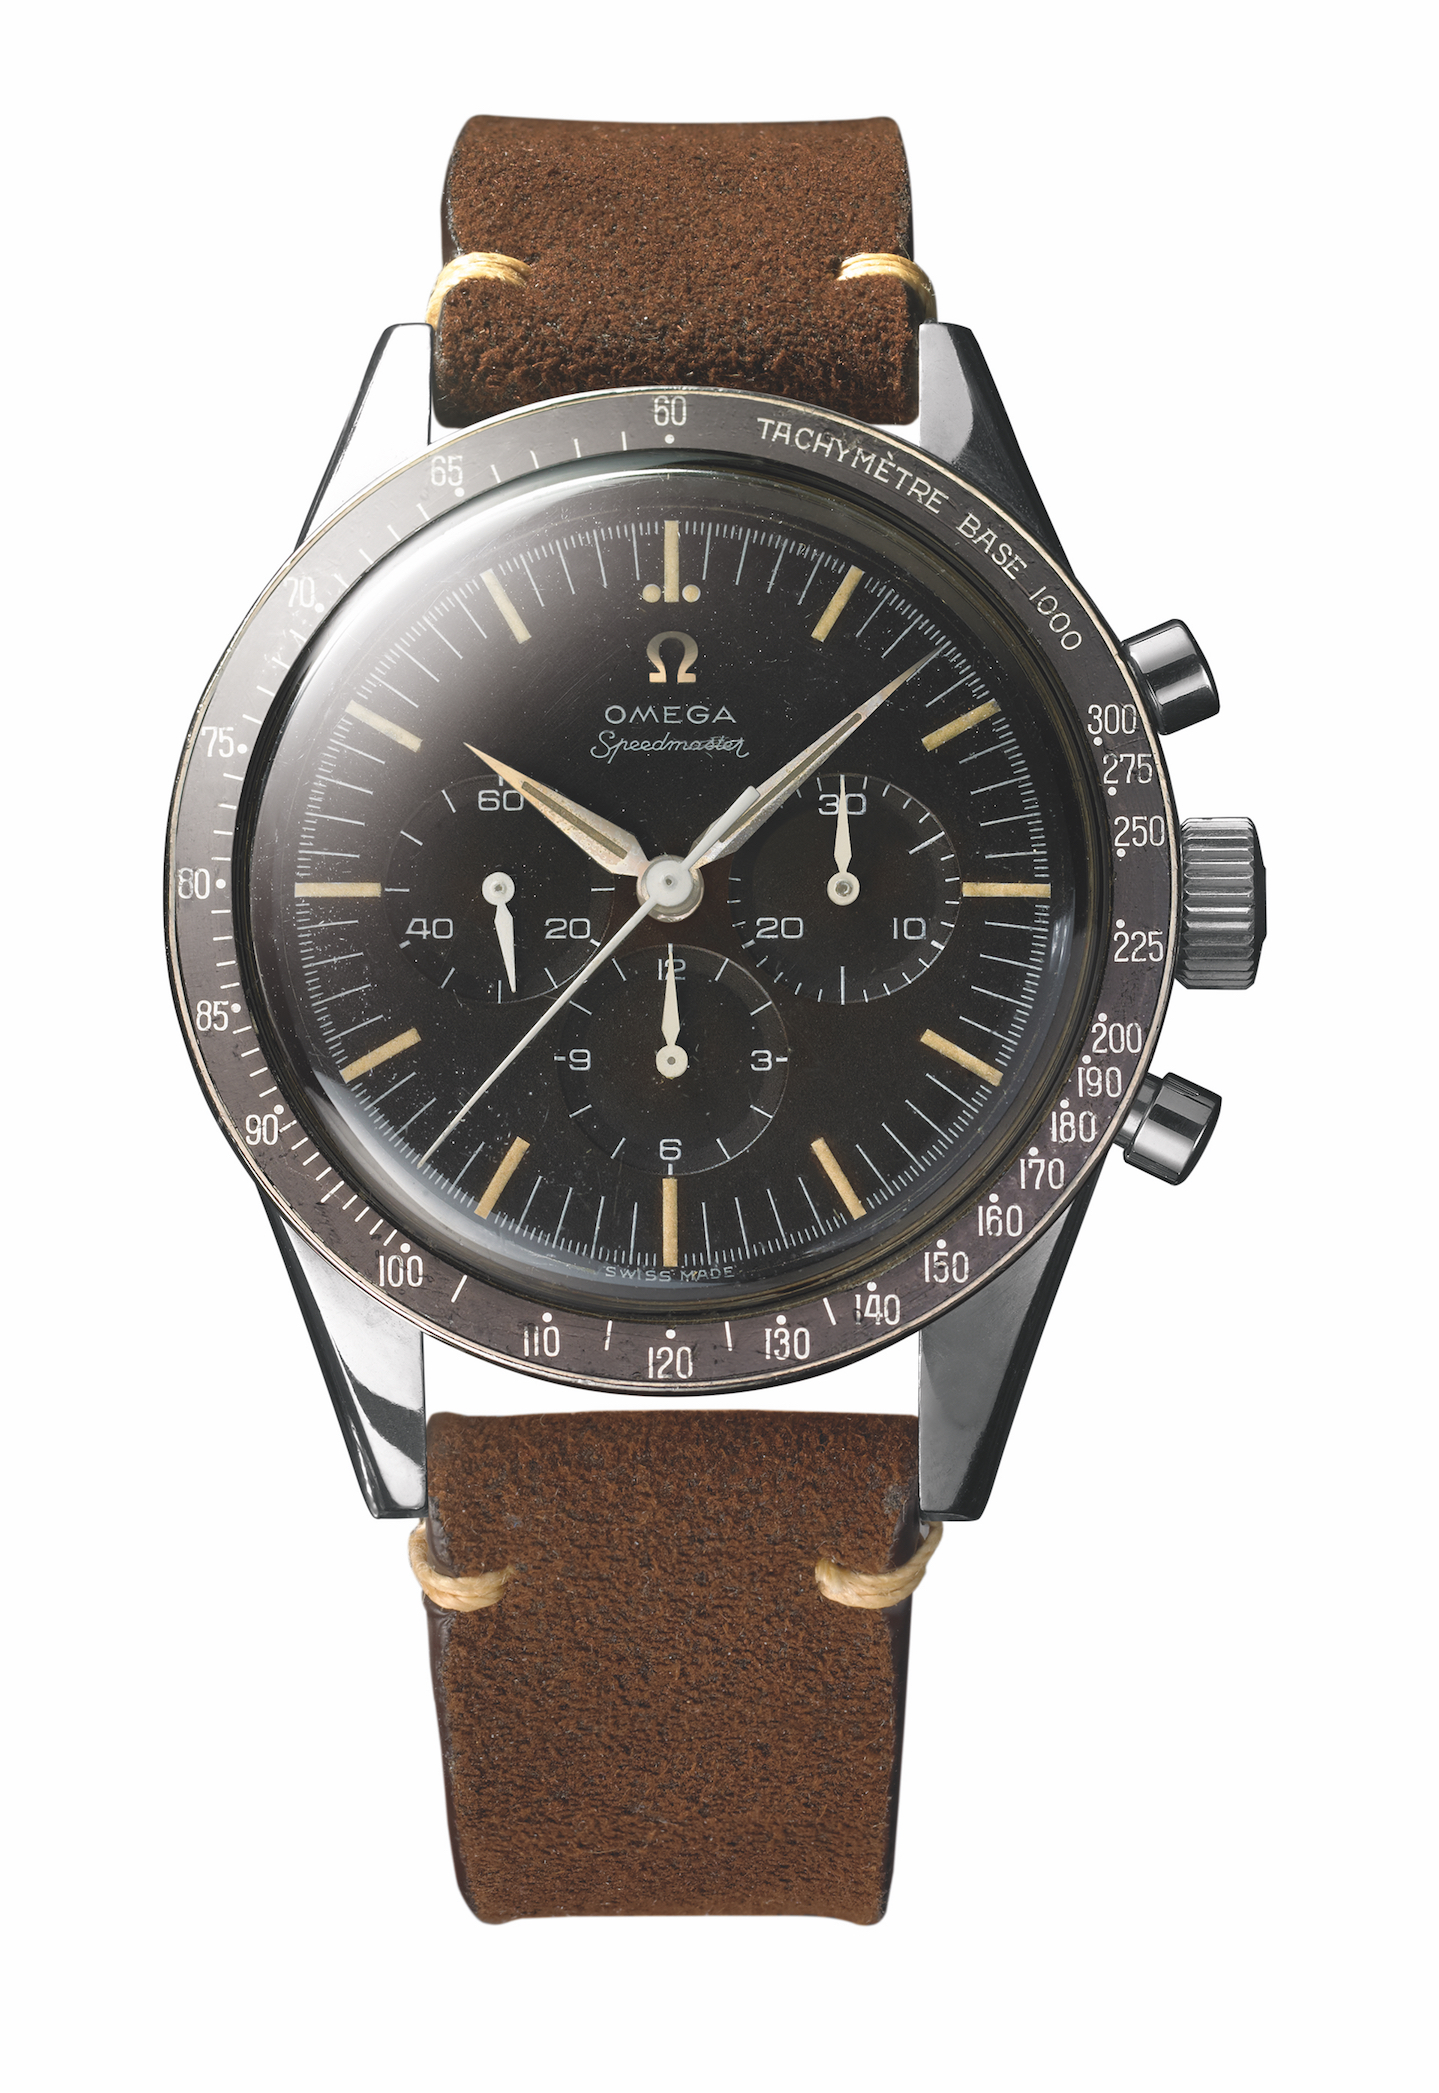 Omega Speedmaster FIRST OMEGA IN SPACE 1959